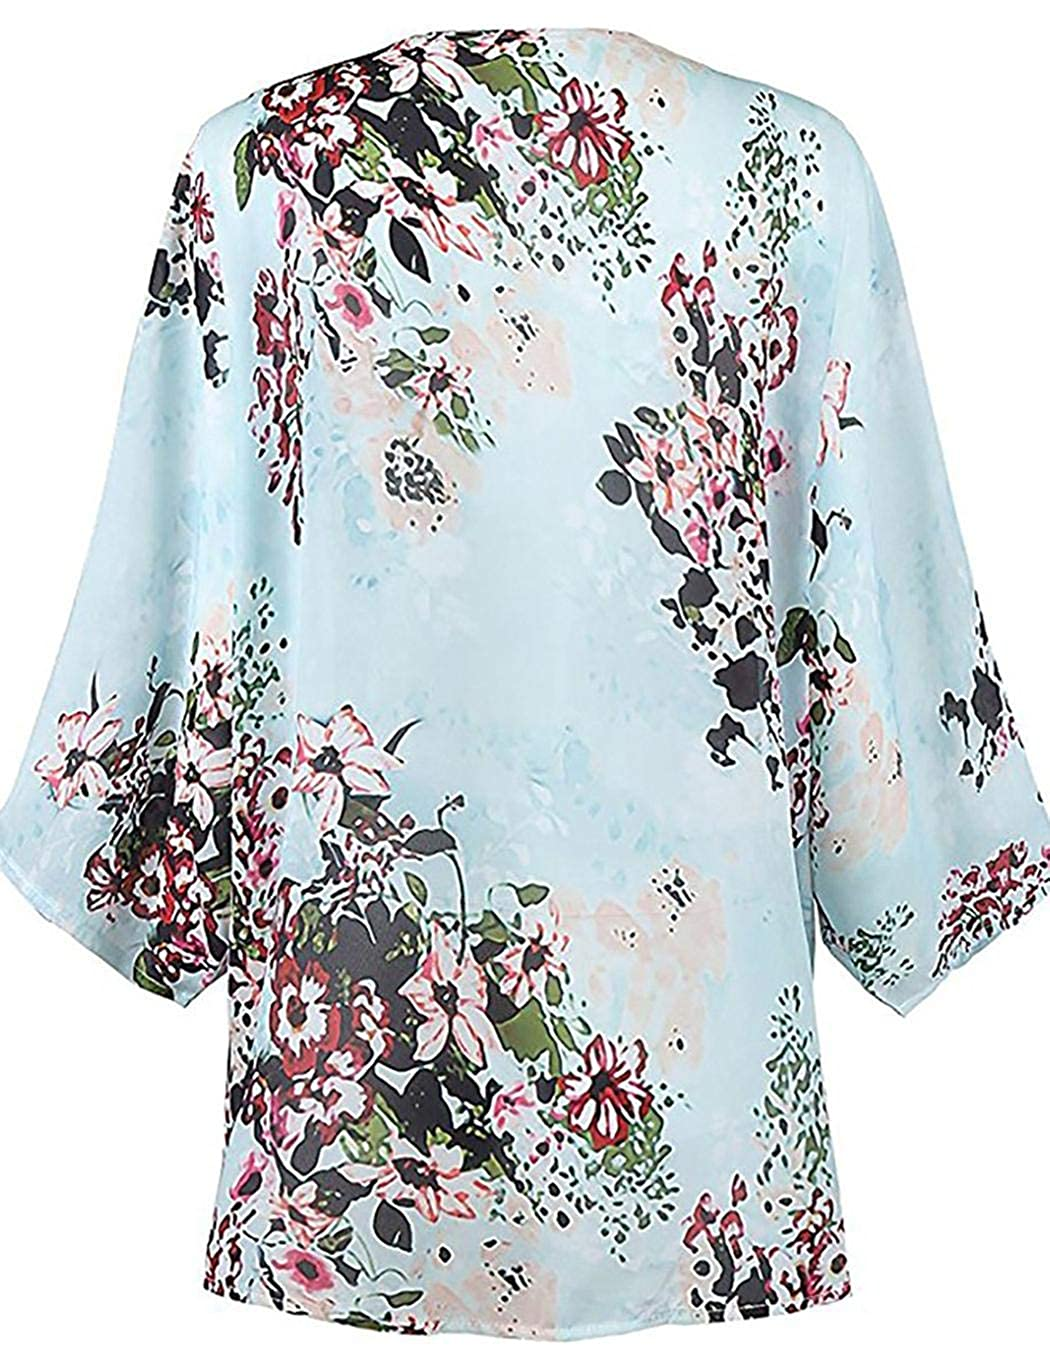 Idomeo Women Half Sleeve Floral Cover Up Chiffon Loose Sun Protection Cardigan Cover-Ups